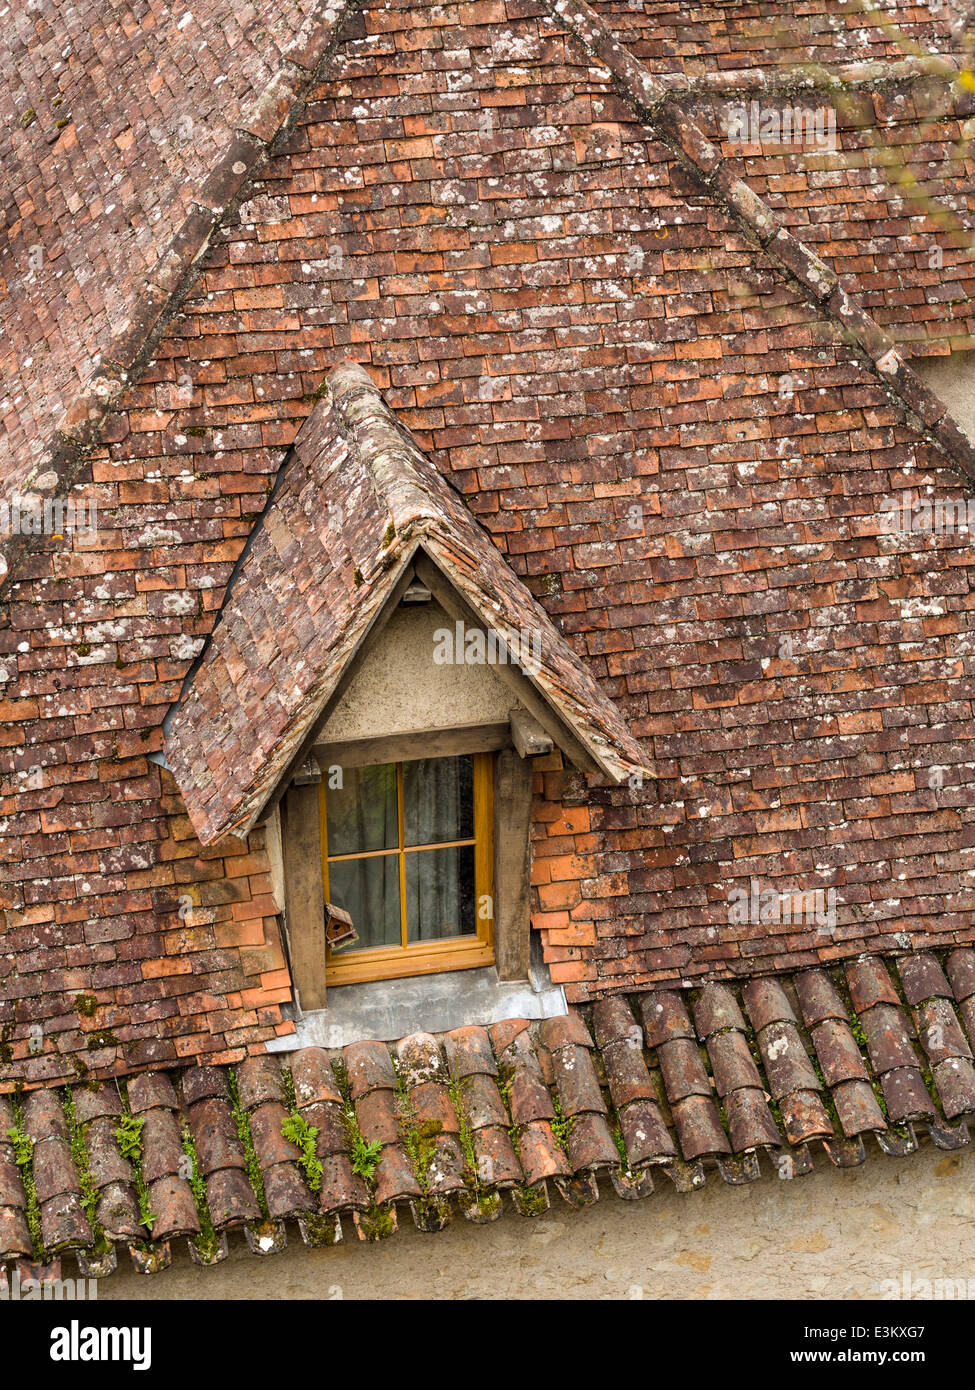 Dormer window in a tiled roof with bird house. A birdhouse hangs outside a small dormer window set into the red - Stock Image